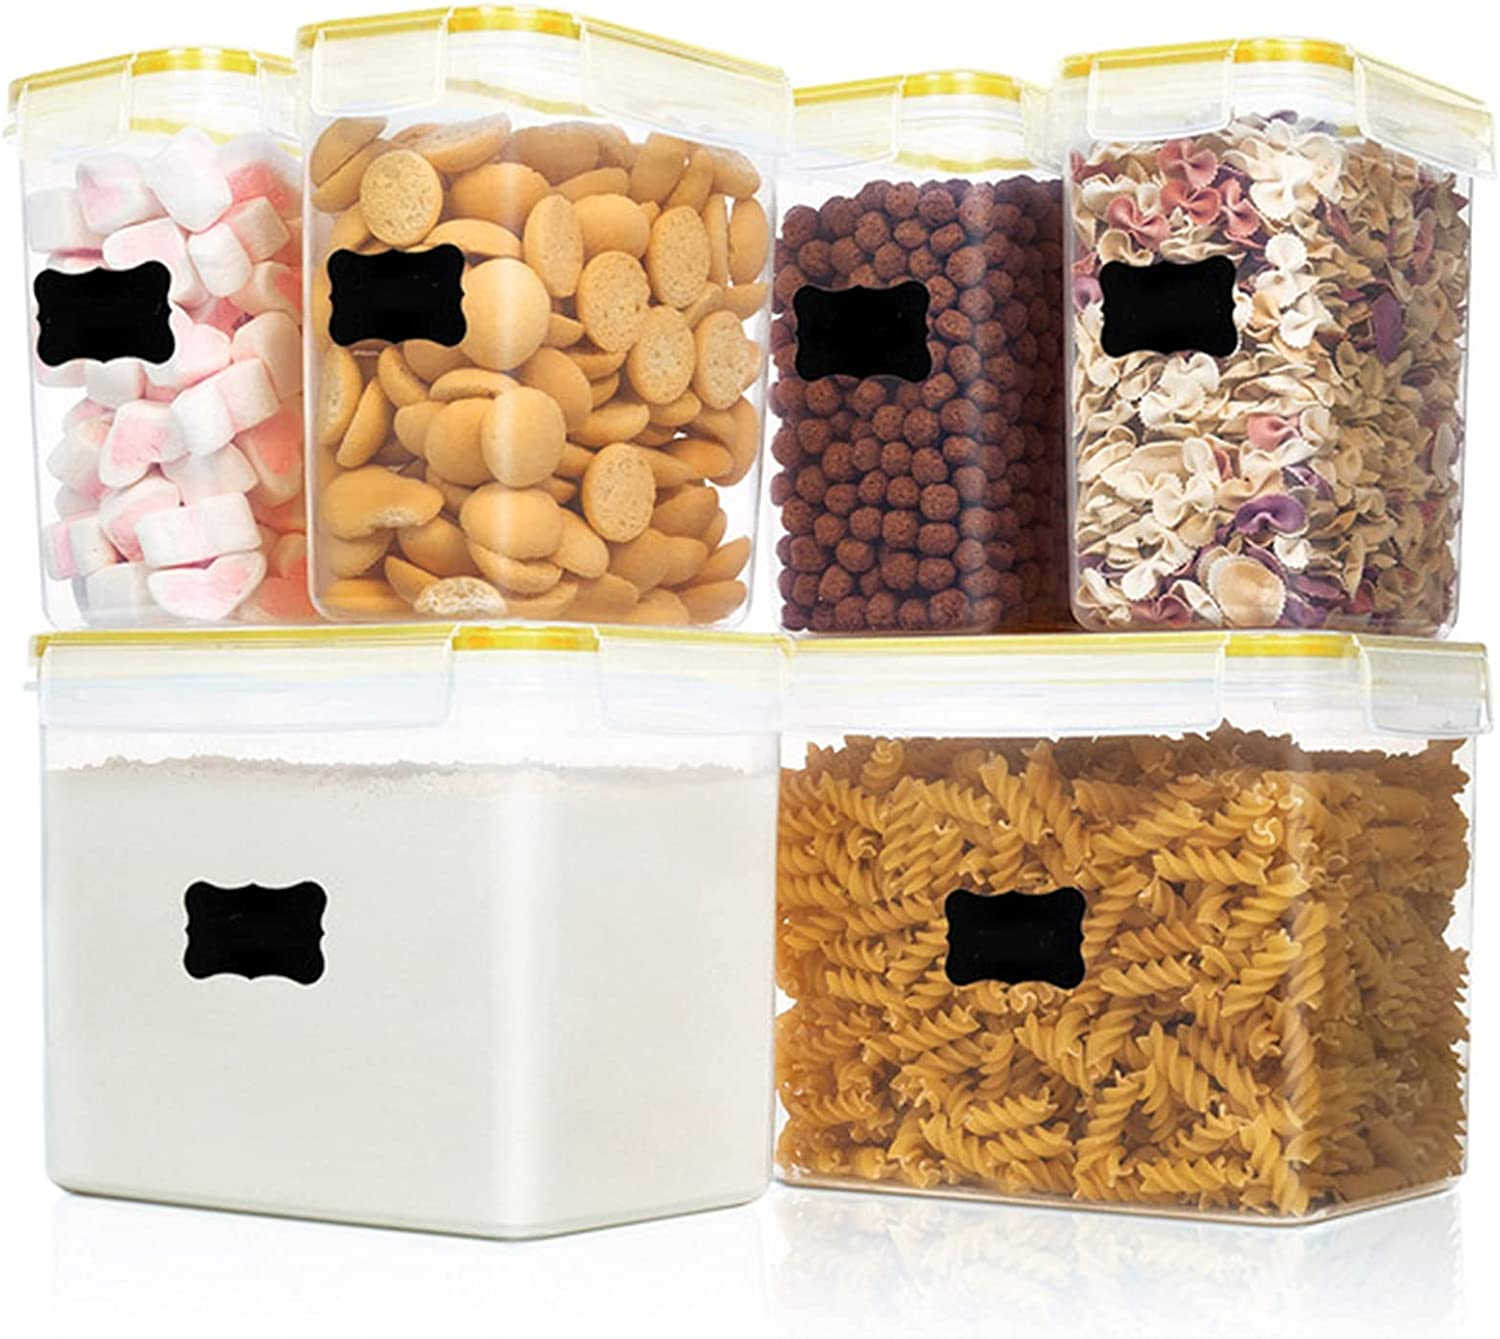 LYXIANG Cereal Containers Fashion Airtight - Plastic Dispenser L Year-end gift